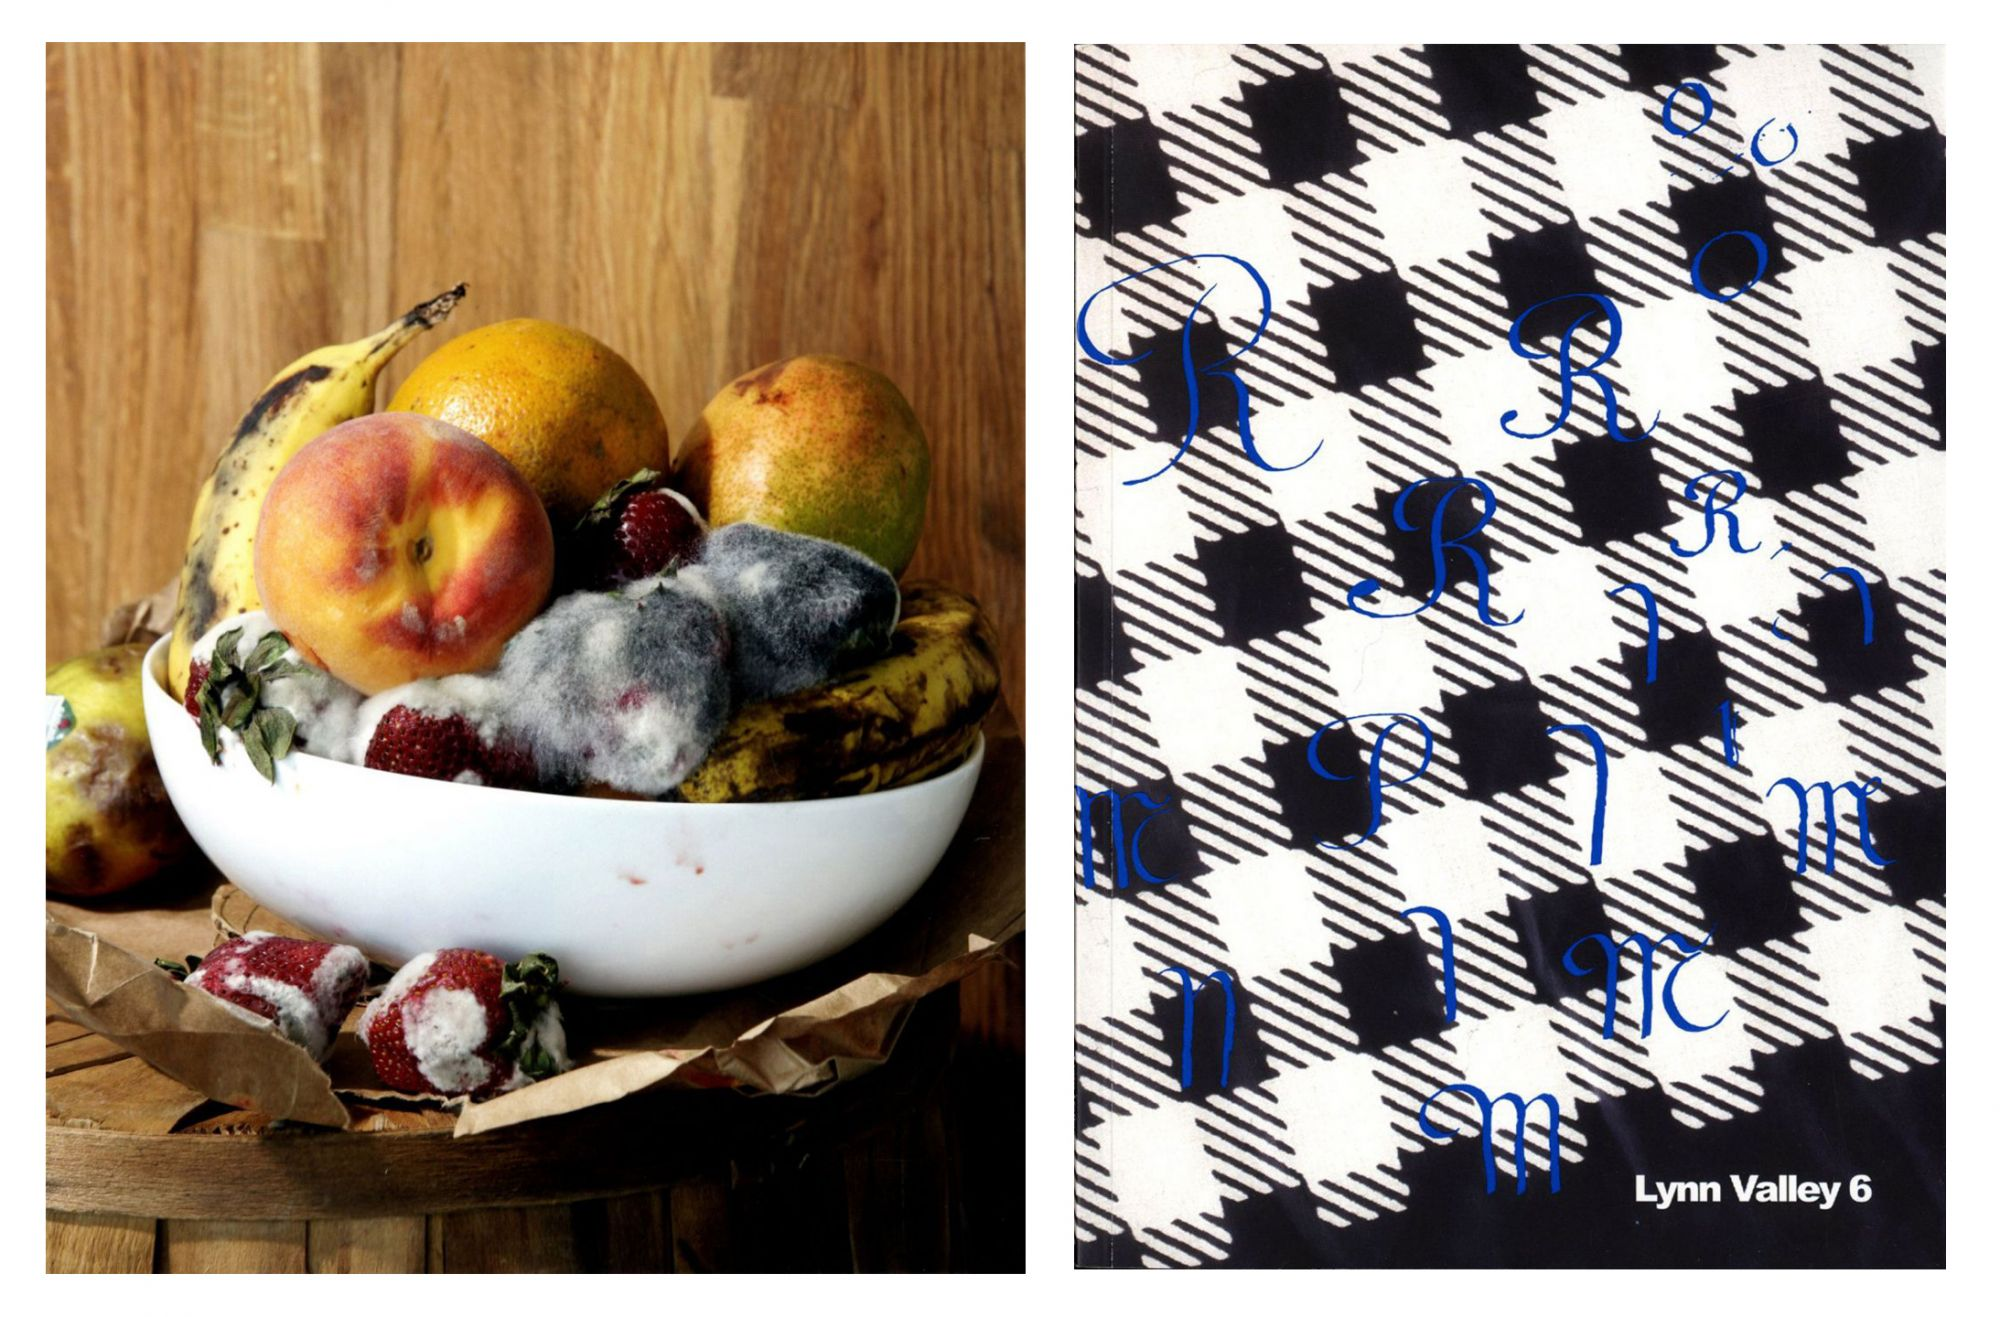 """Roe Ethridge: """"Old Fruit,"""" Limited Edition Archival Pigment Print (Includes a Copy of the Book """"Lynn Valley 6"""")"""